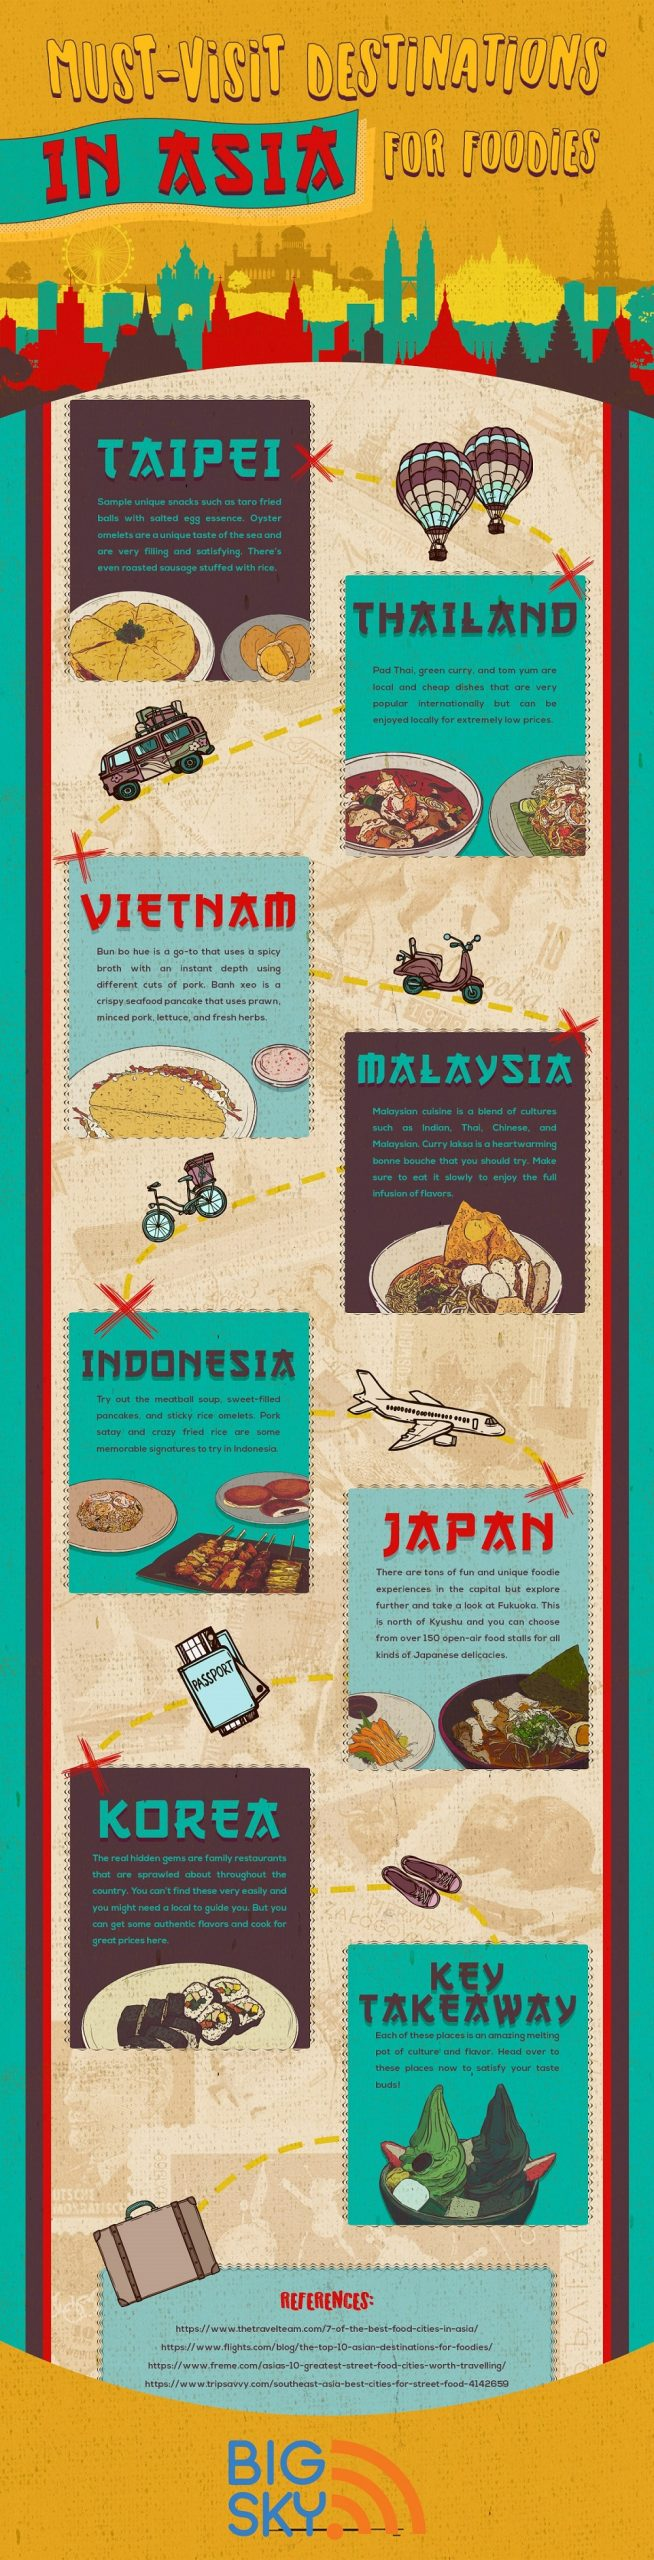 Must-Visit-Destinations-in-Asia-for-Foodies_infog